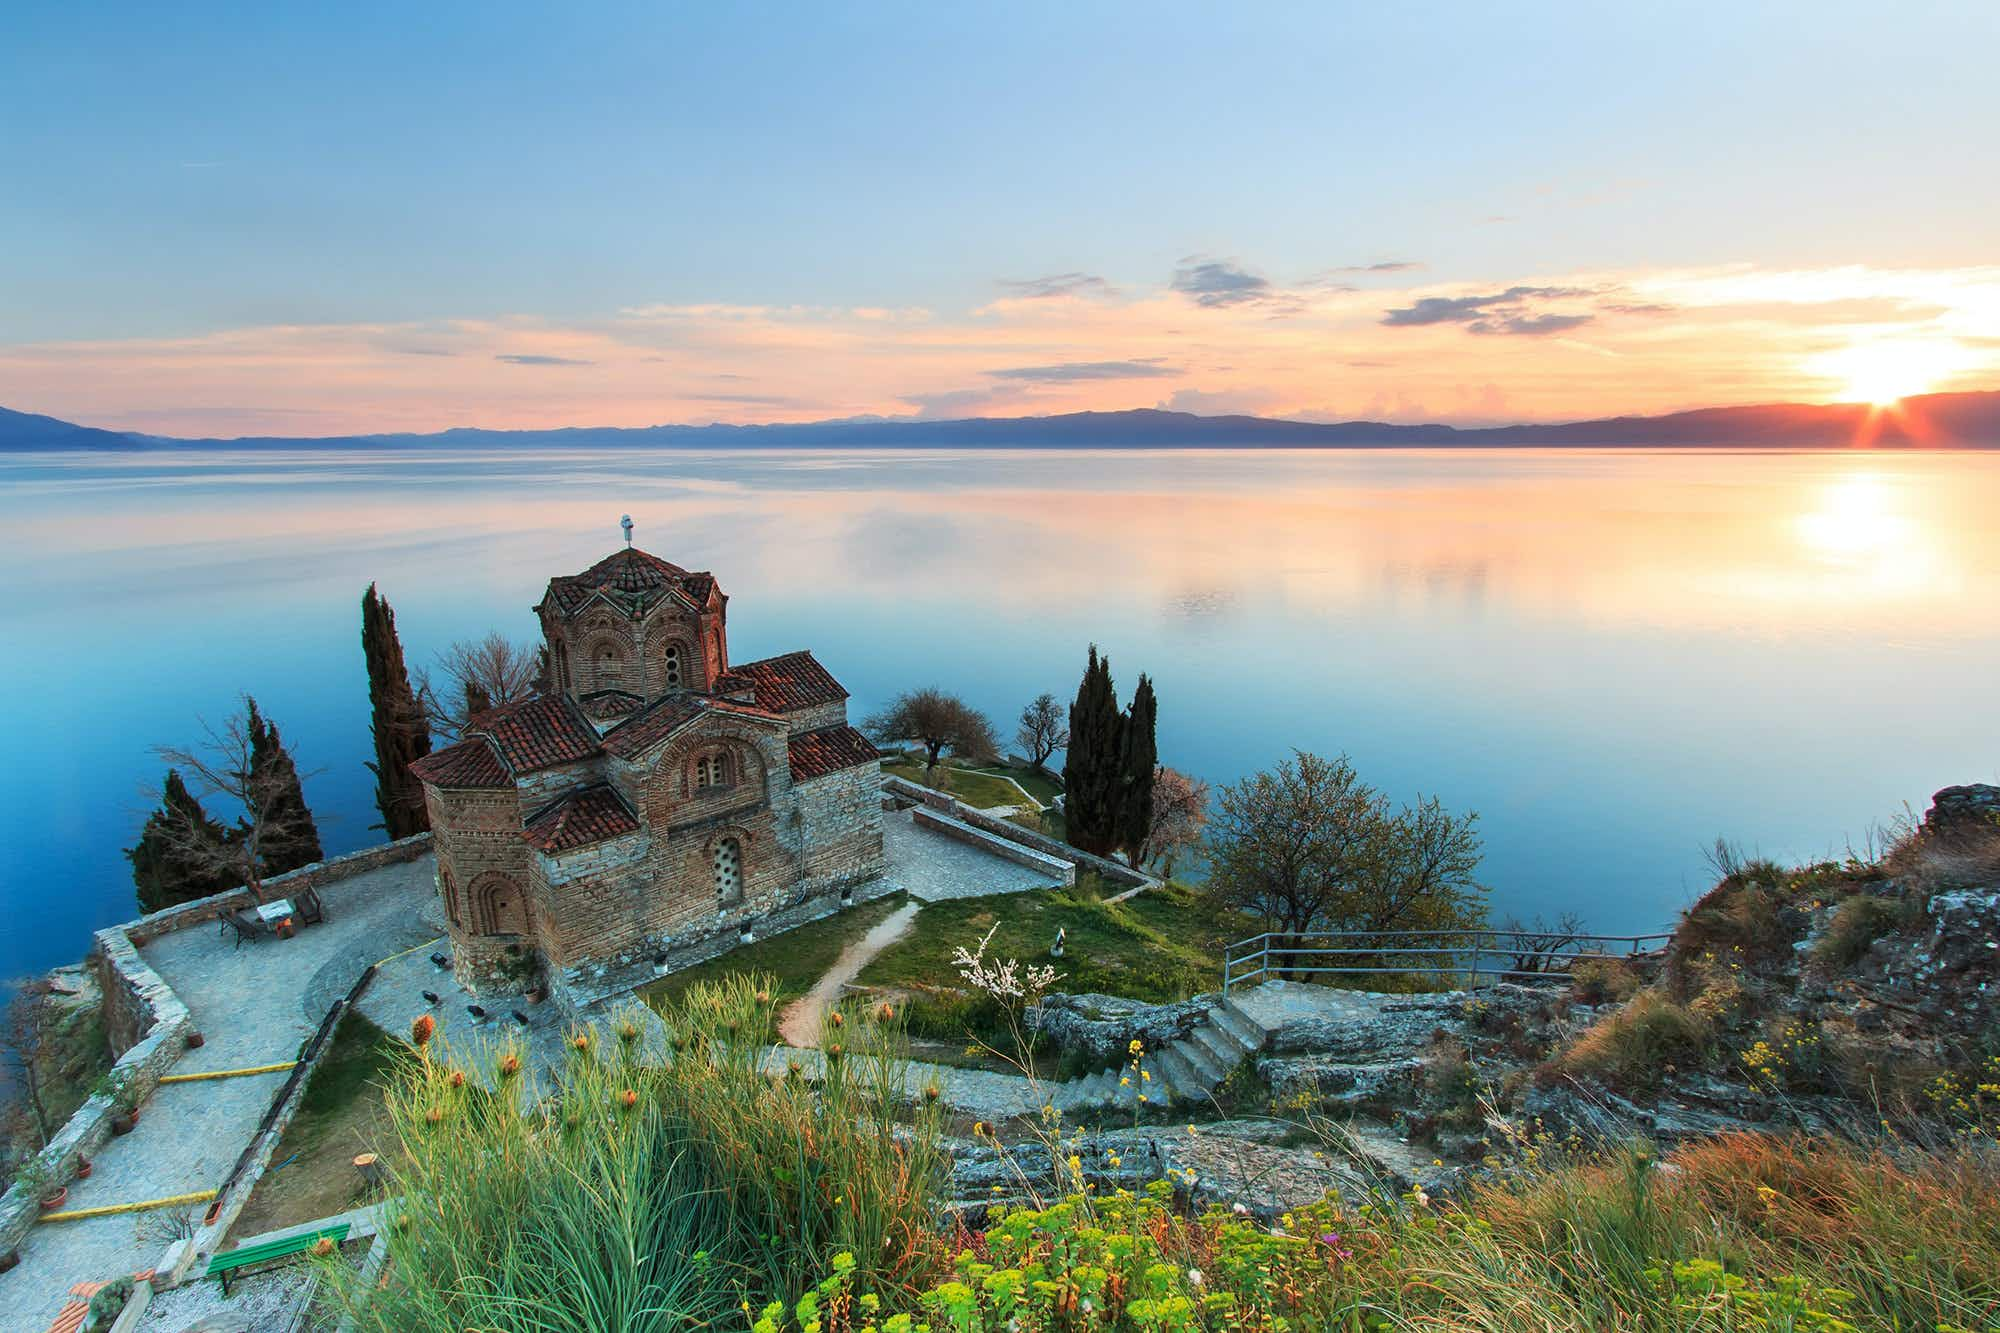 Explore the Western Balkans through three new cultural routes